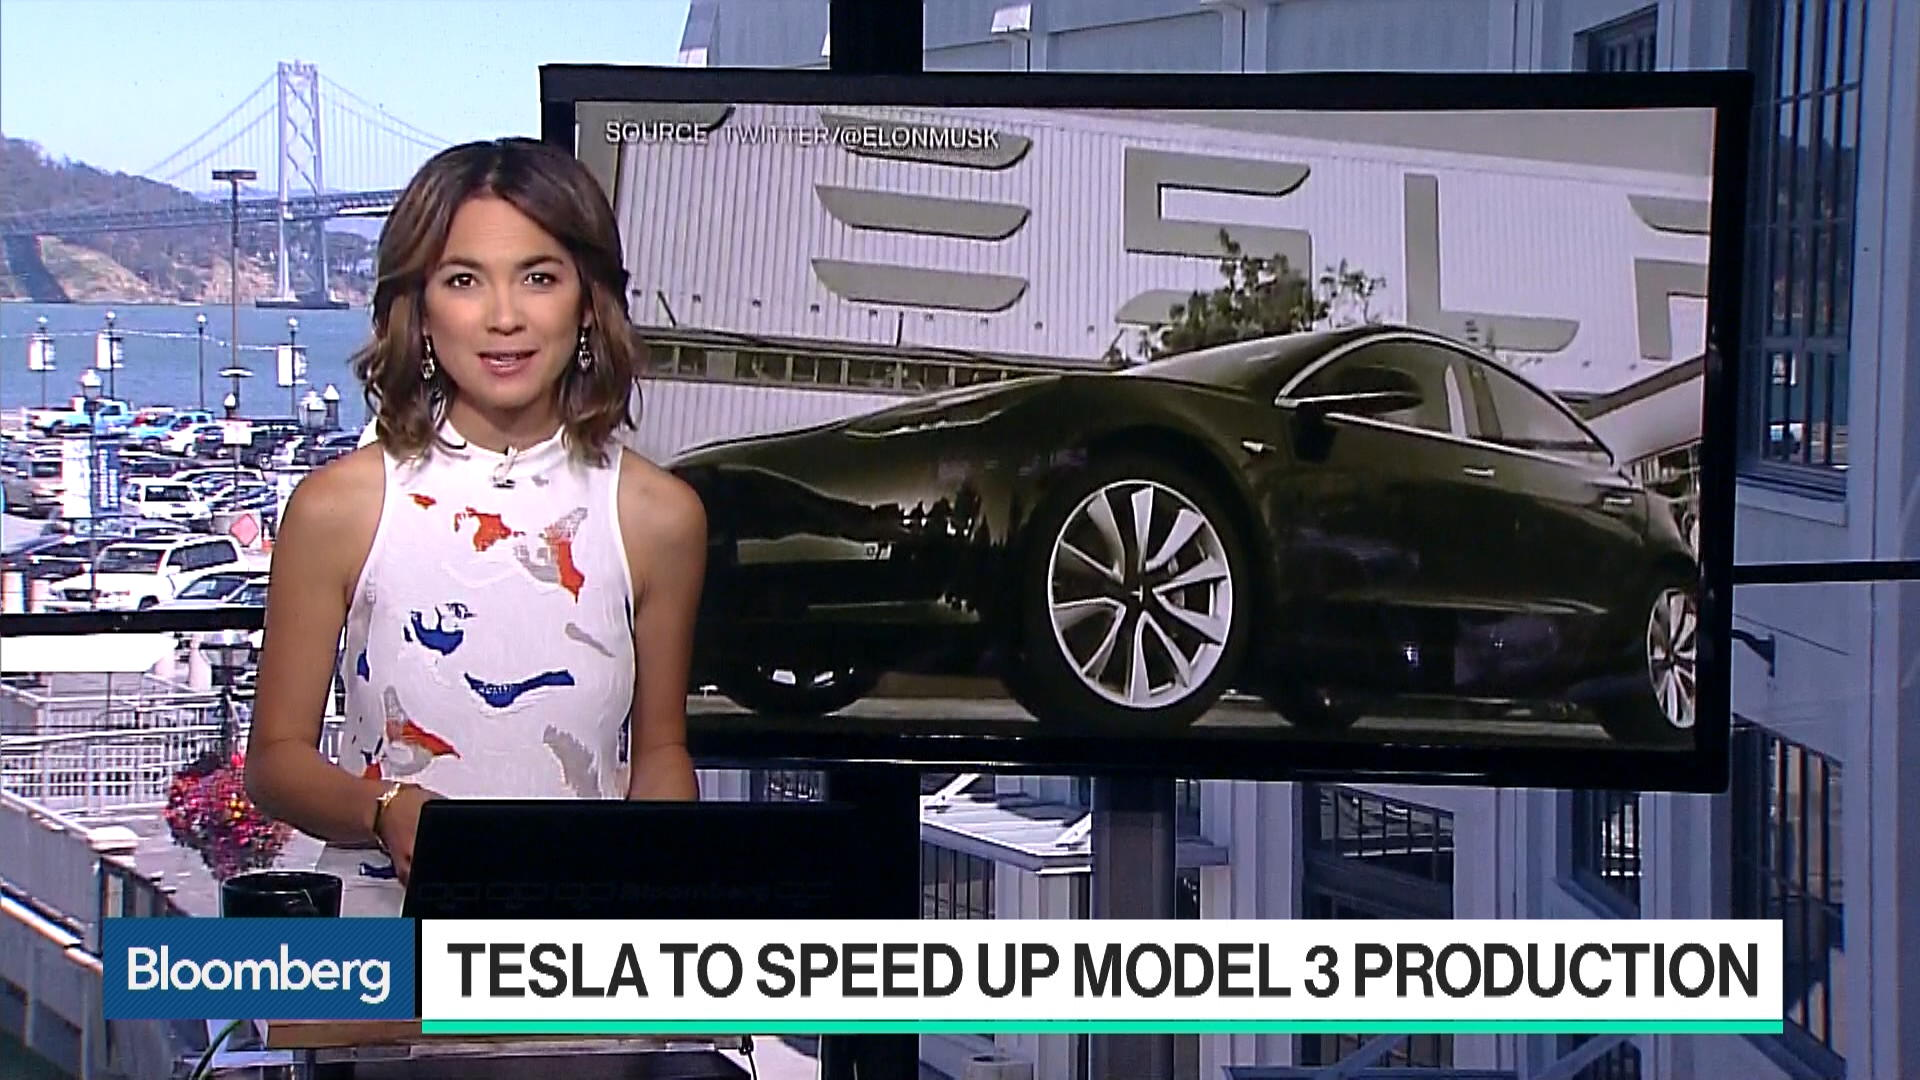 Tesla to Speed Up Model 3 Production - Bloomberg